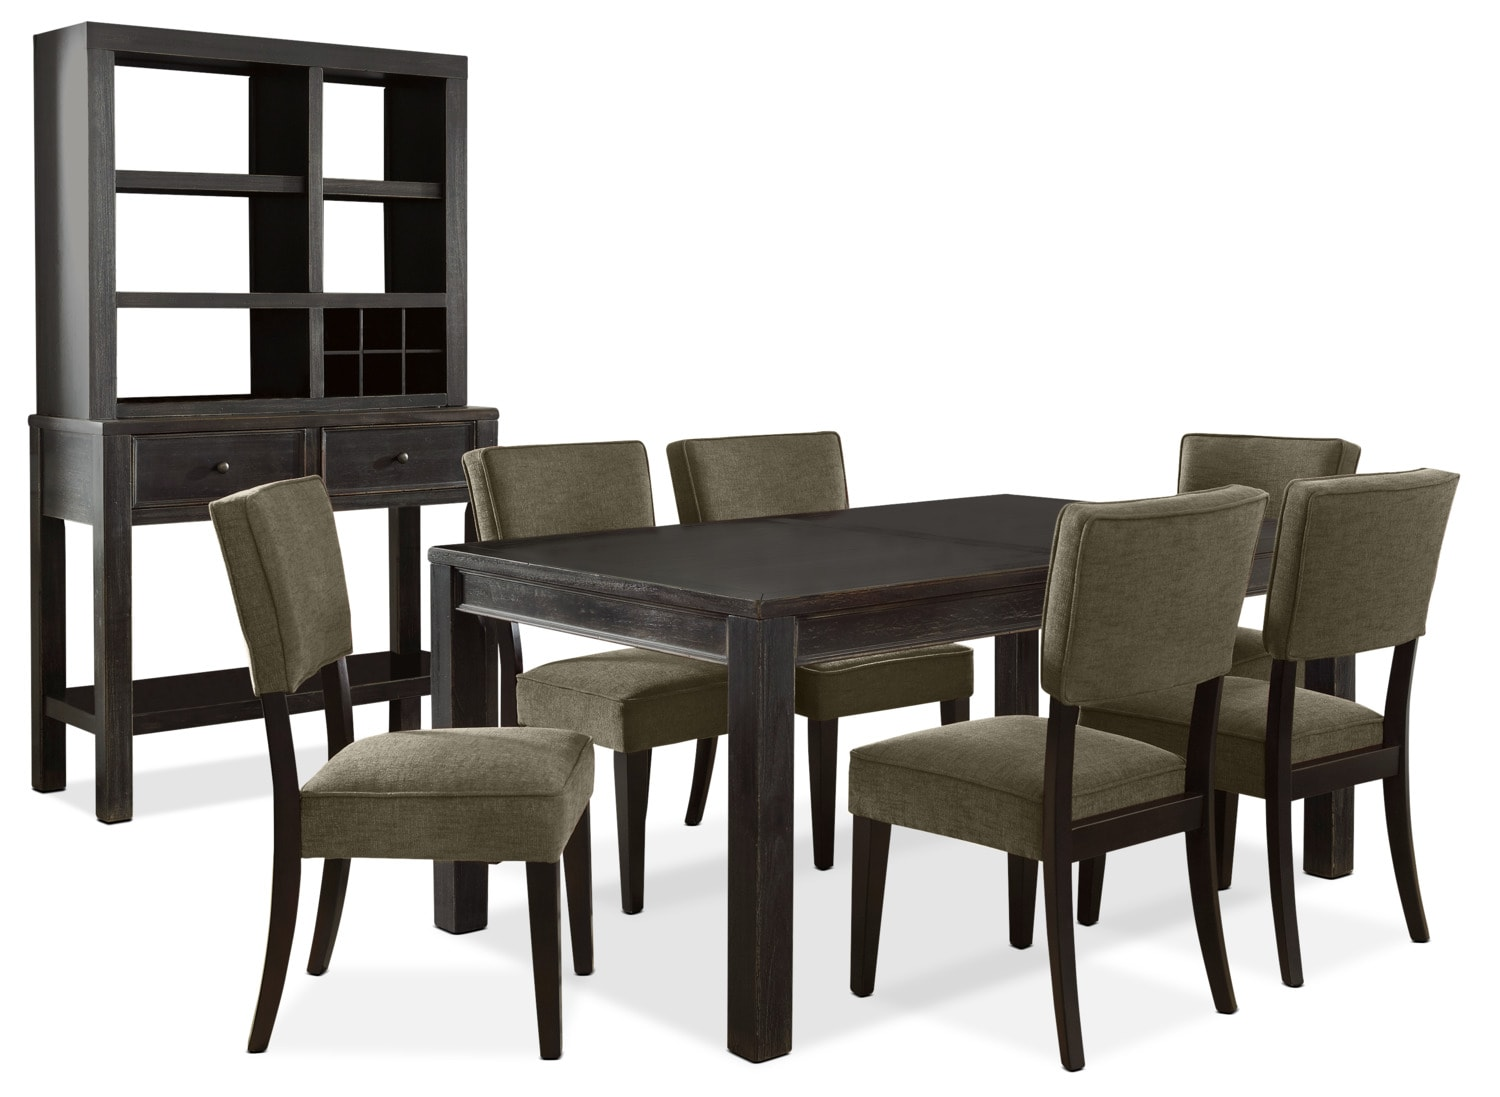 Gavelston 9-Piece Dining Package – Green